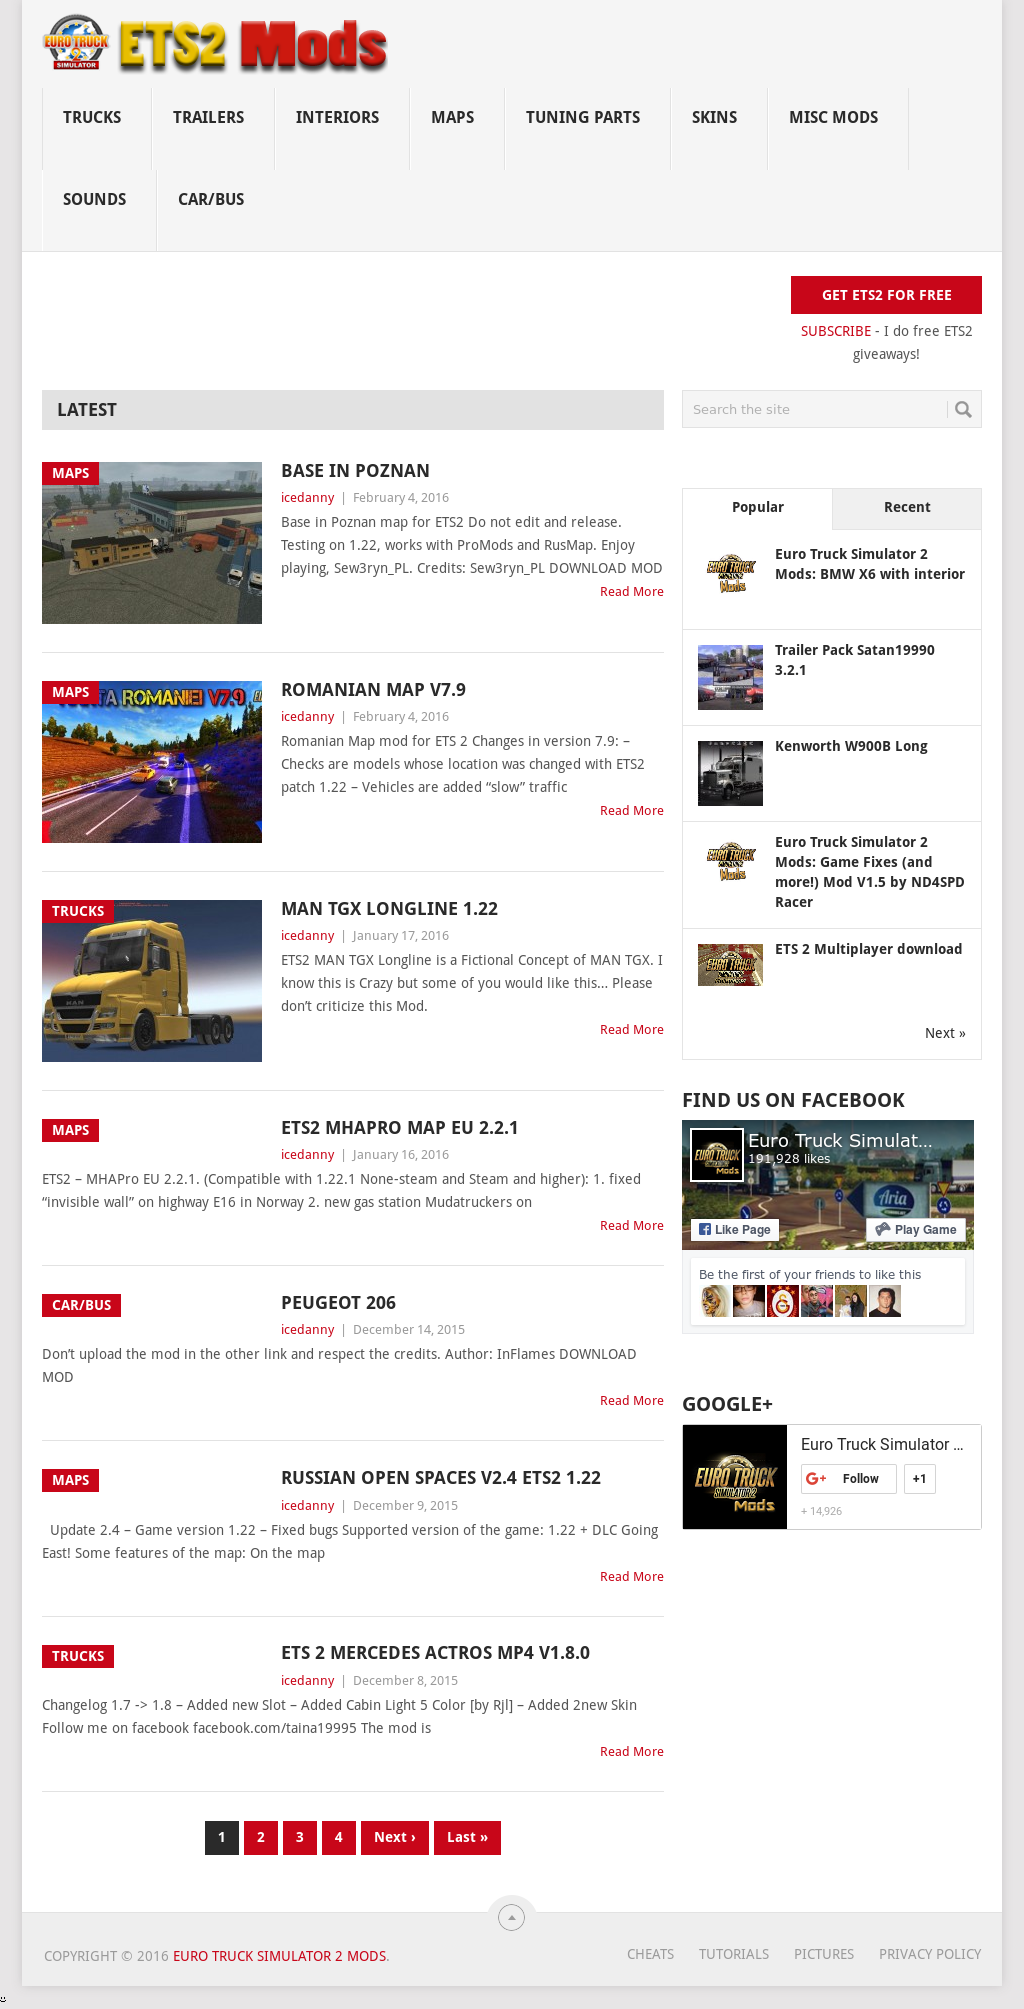 Ets2 Mods Competitors, Revenue and Employees - Owler Company